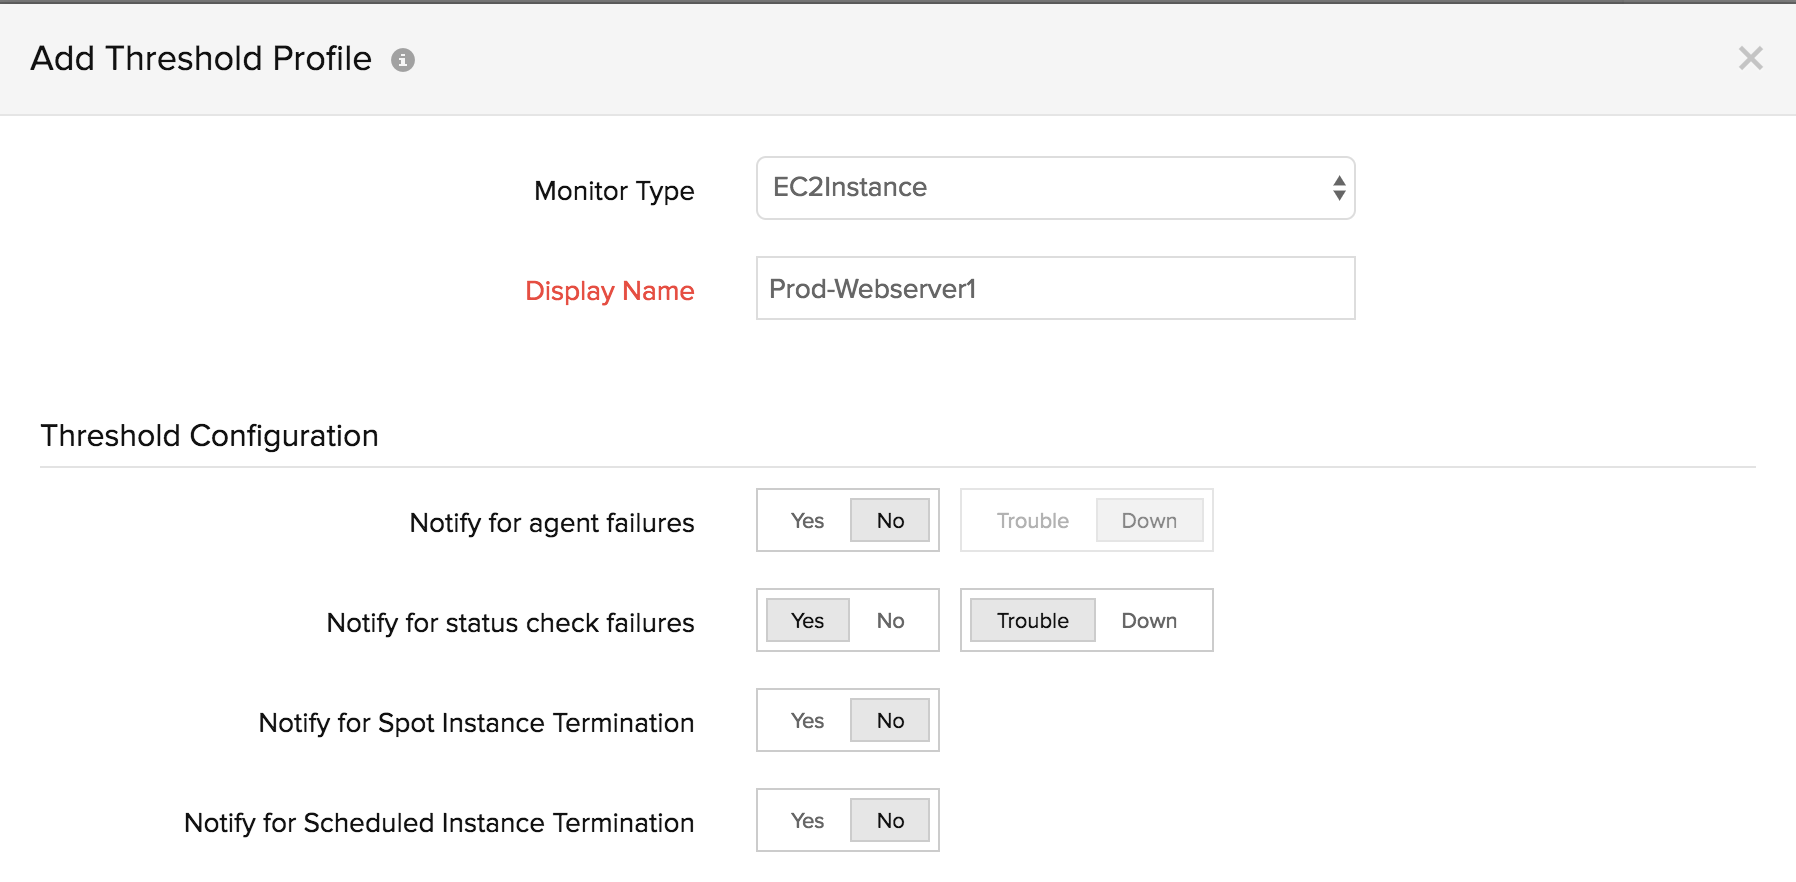 EC2 instance threshold profile